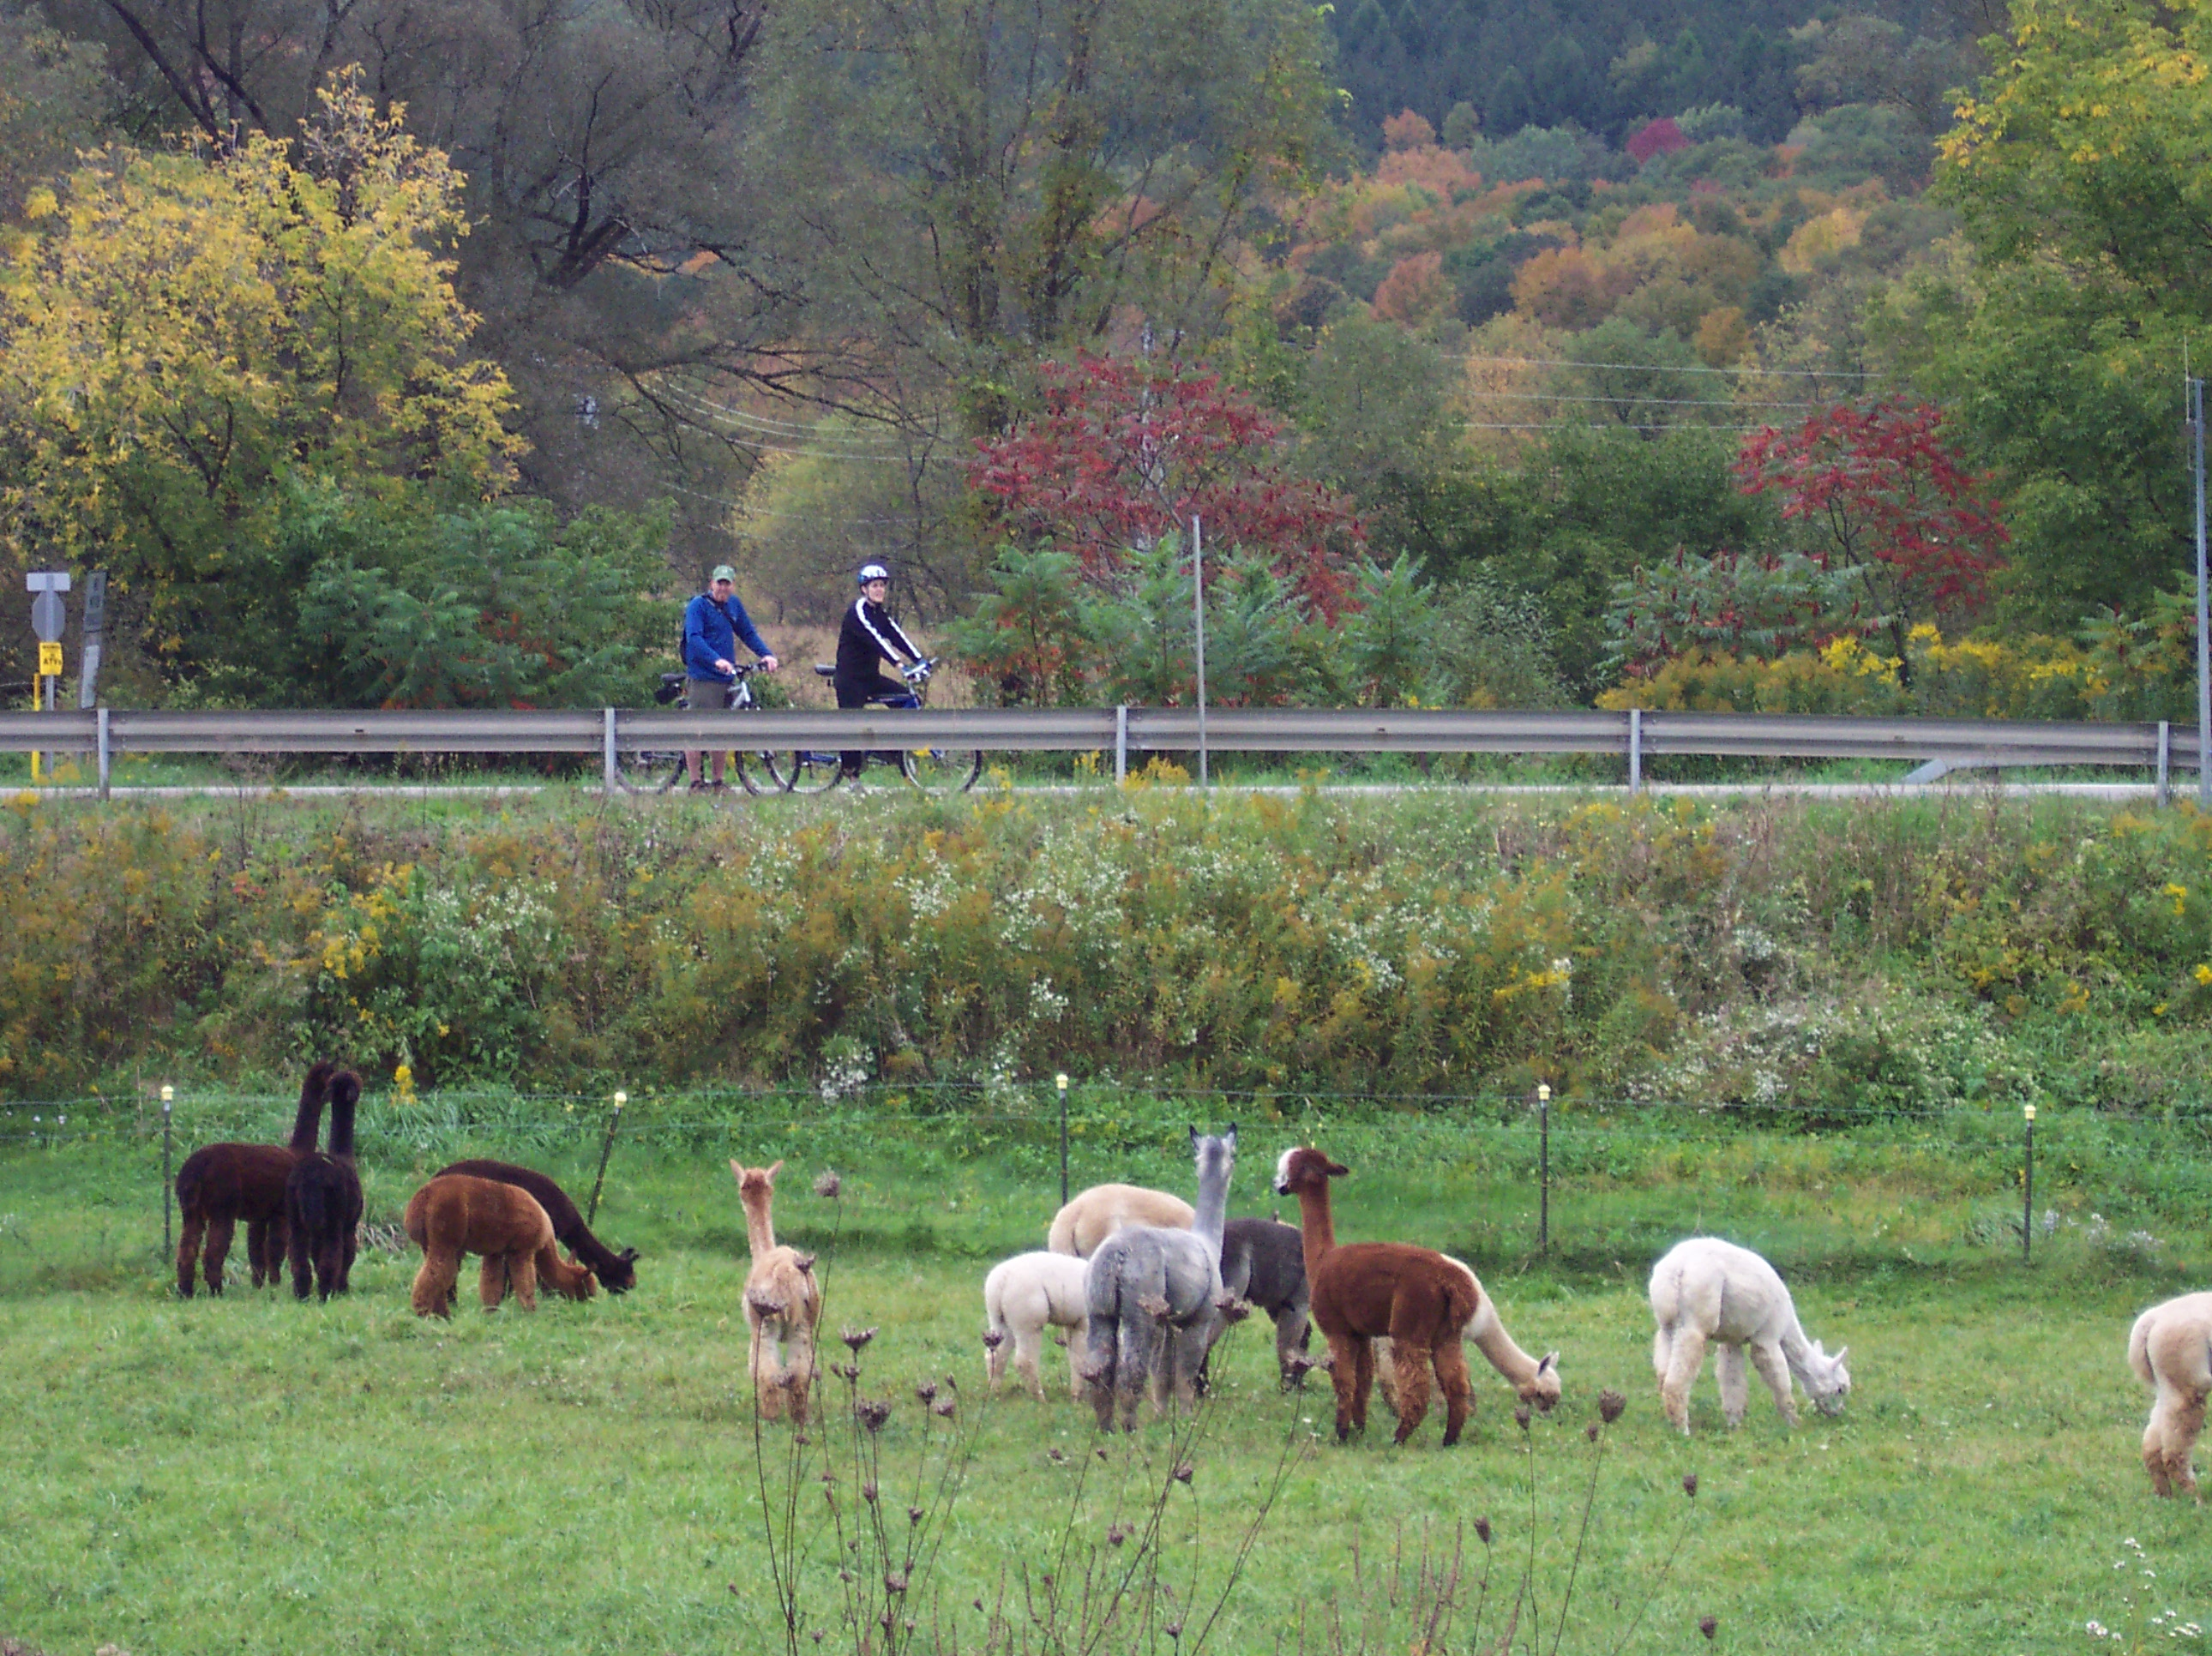 Alpacas at Mager Mountain Alpacas, along the Amish Trail in Little Valley NY.